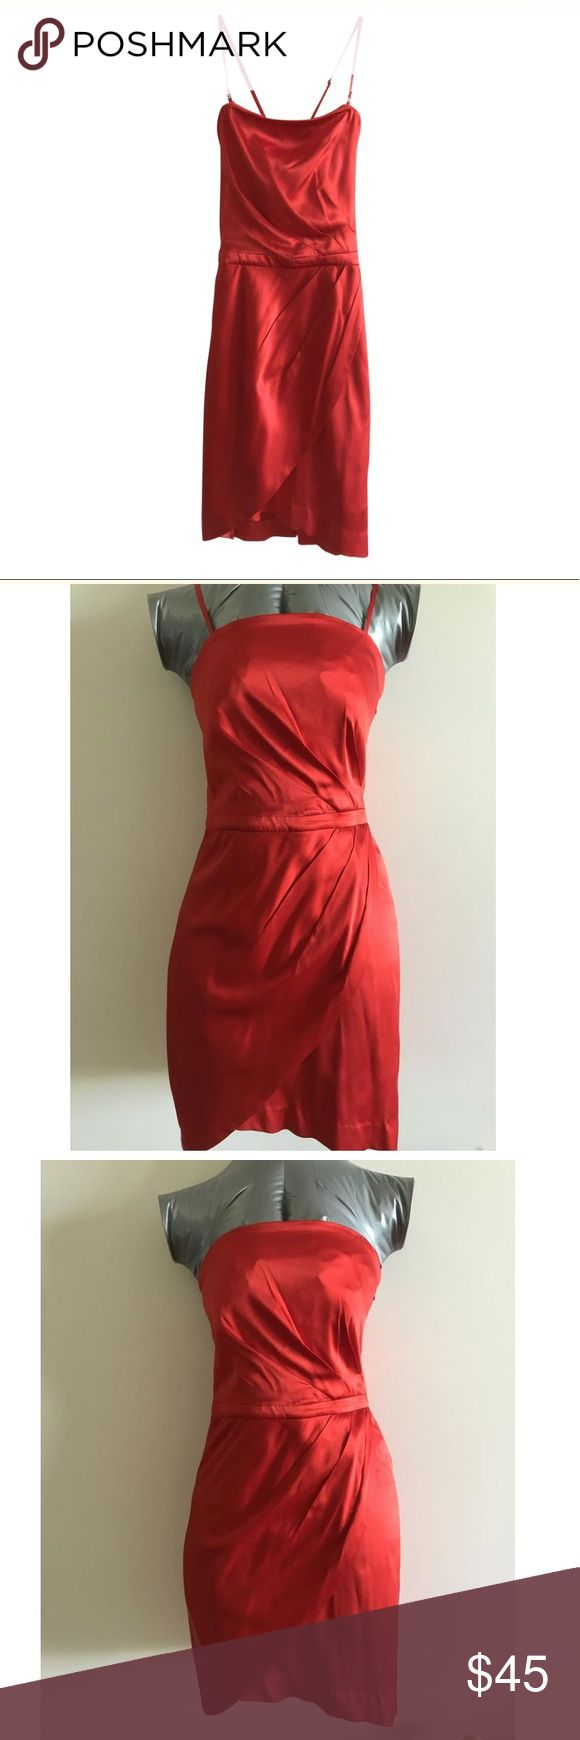 Armani Exchange Silk Dress - Burnt Orange Size 0 Armani Exchange Silk Dress - Burnt Orange  Size 0  Silk - 93%  Spandex - 7%    Gorgeous dress. Bottom folds make the dress look like an upside down tulip.   Beautiful burnt orange silk dress.   Skirt has a slip underneath. Straps can be taken off.  Upper part can be worn strapless, regular straps, or crossed straps.    Two slight translucent stains on the front of the upper bodice.   Refer to photo (I am pointing out where the stain is). A/X…